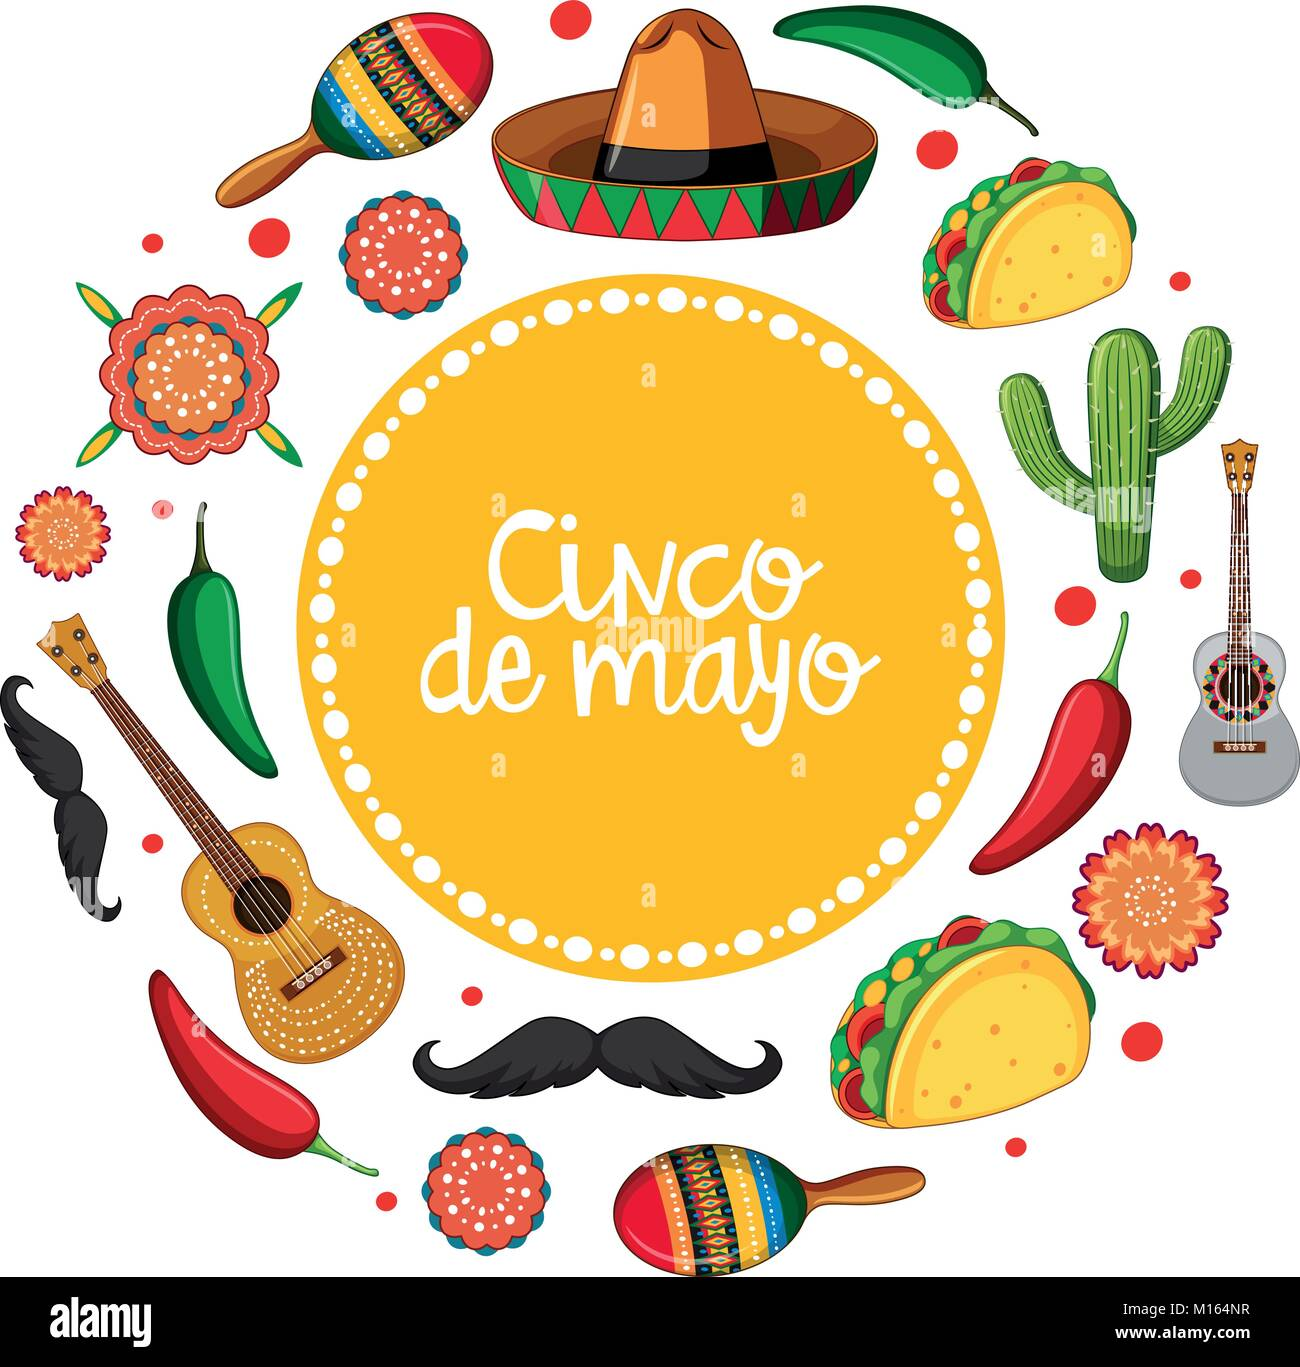 cinco de mayo card template with mexican musical instruments stock